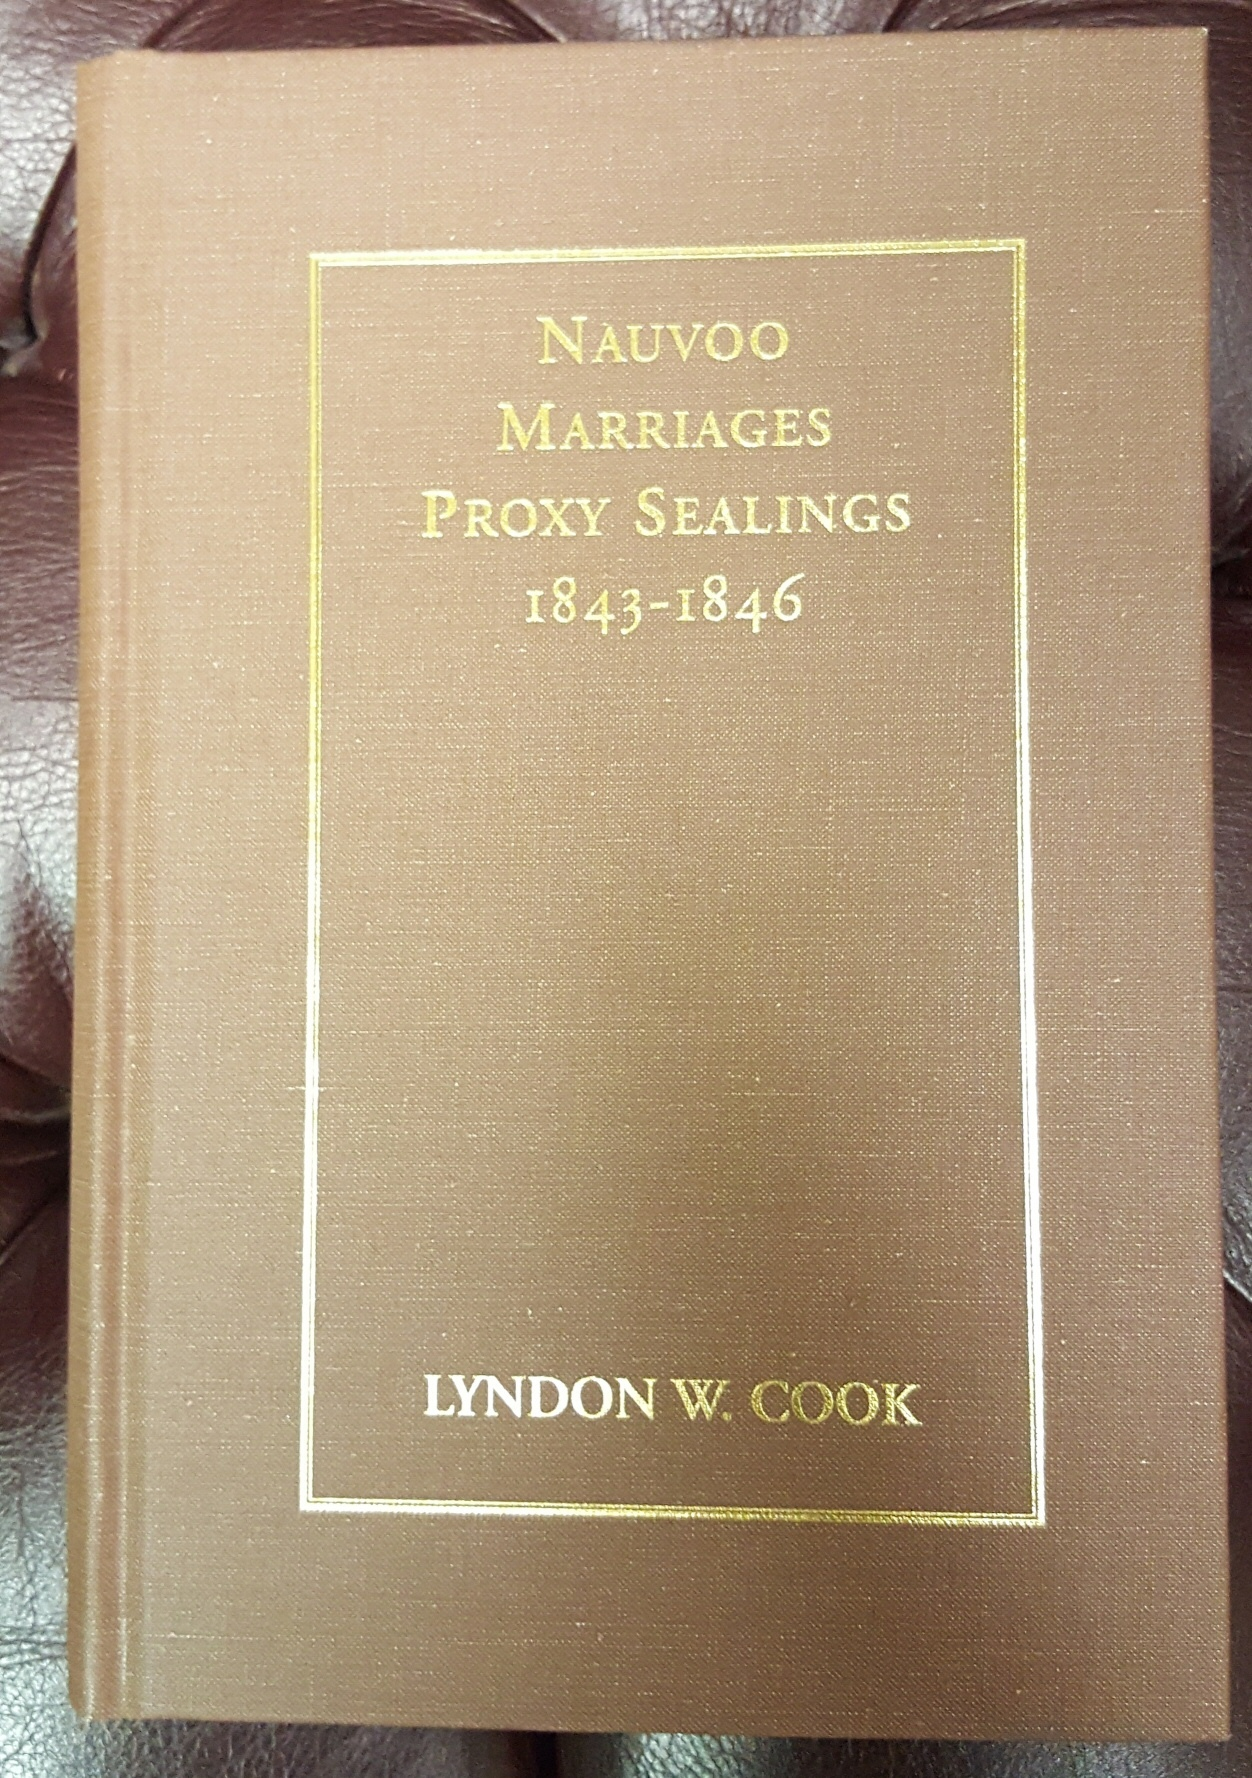 Nauvoo Marriages; Proxy Sealings 1843-1846, Cook, Lyndon W.